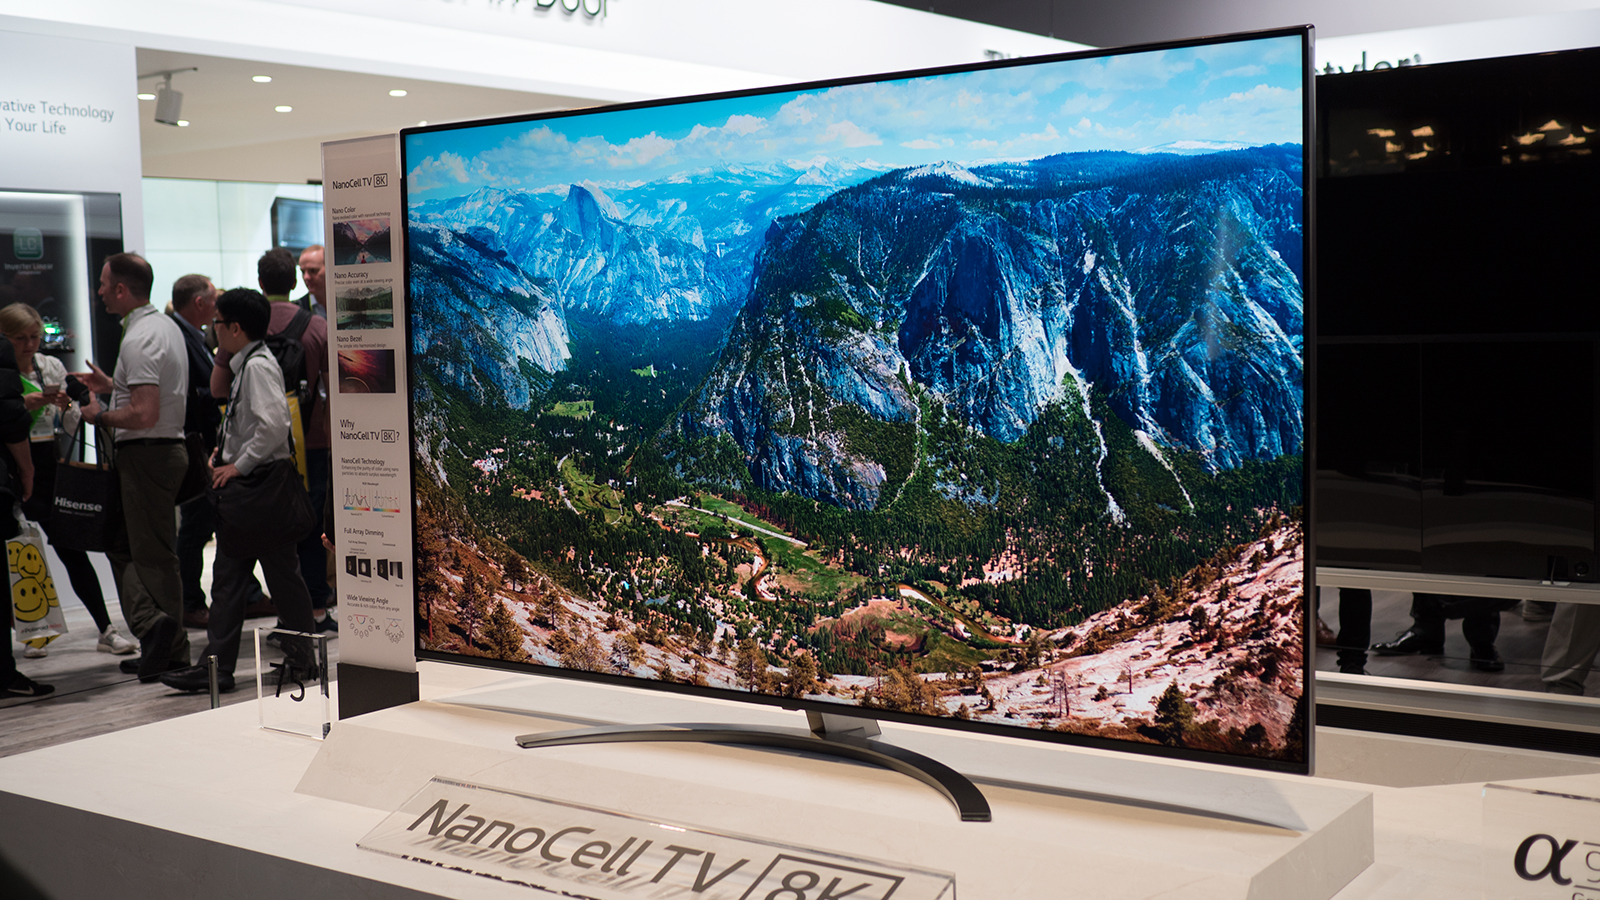 Ultra-ultra settings: how 8K TVs are going to transform gaming 1547250556_541_ultra-ultra-settings-how-8k-tvs-are-going-to-transform-gaming